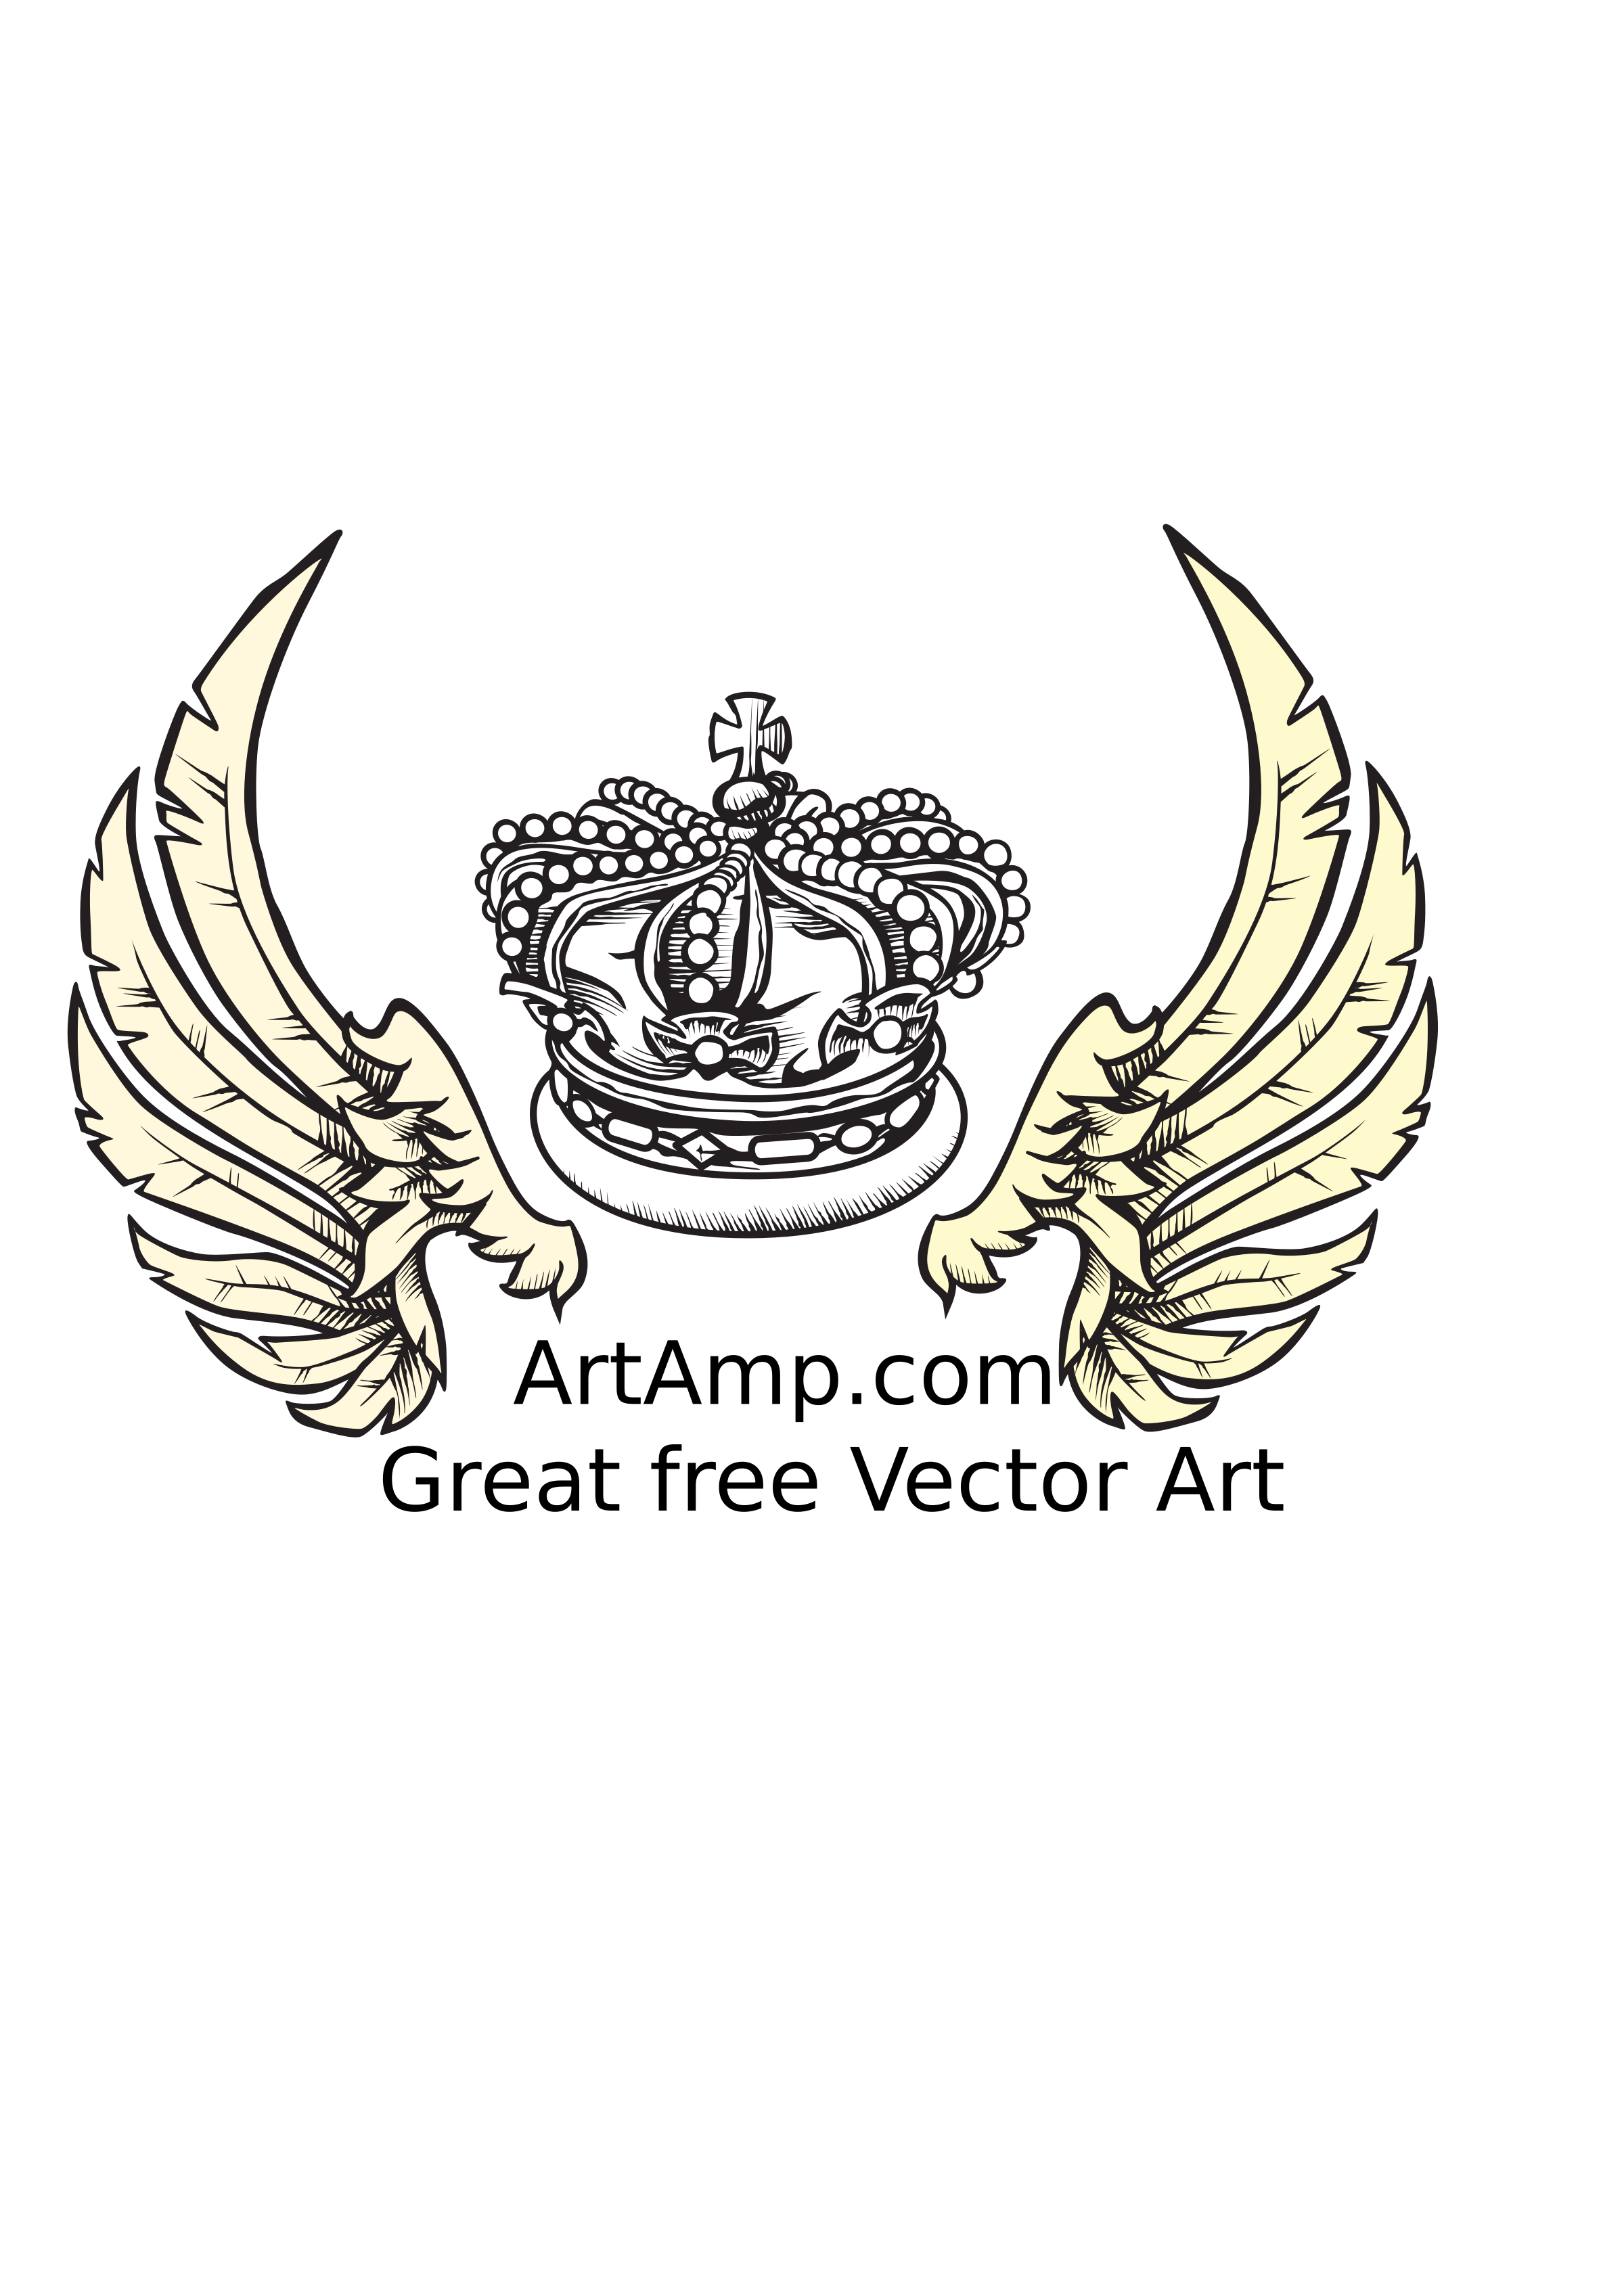 Crown crest clipart png transparent library Clipart - Crown and Wings Herolday Elements transparent library